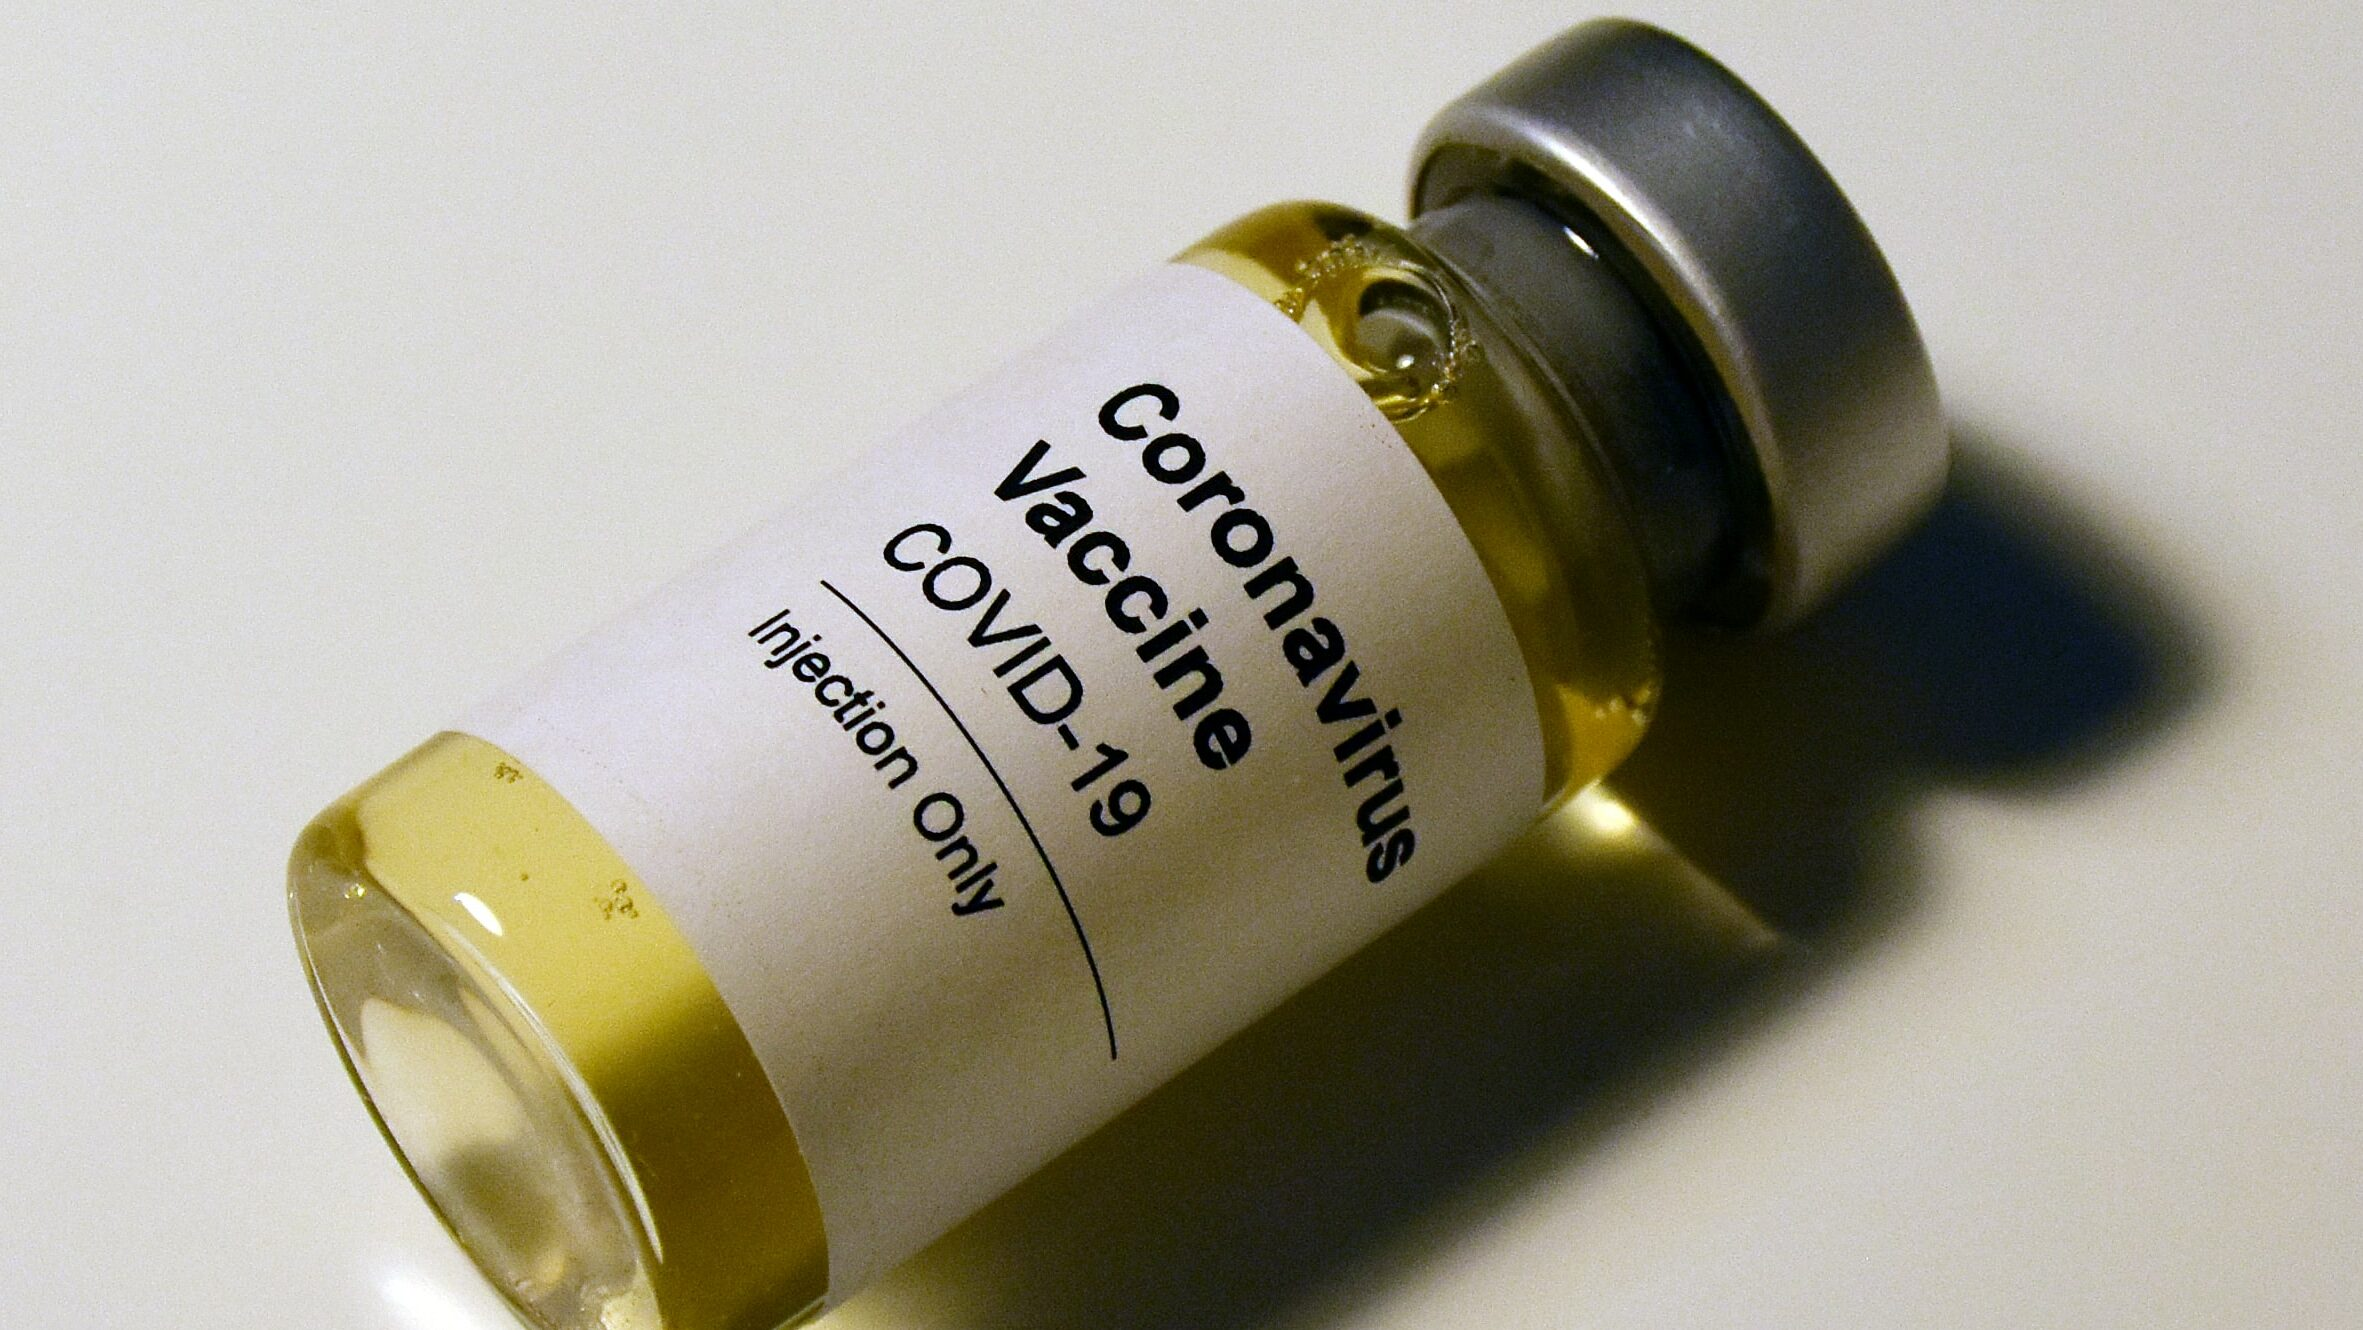 A vial reading Coronavirus Vaccine COVID-19 Injection Only.